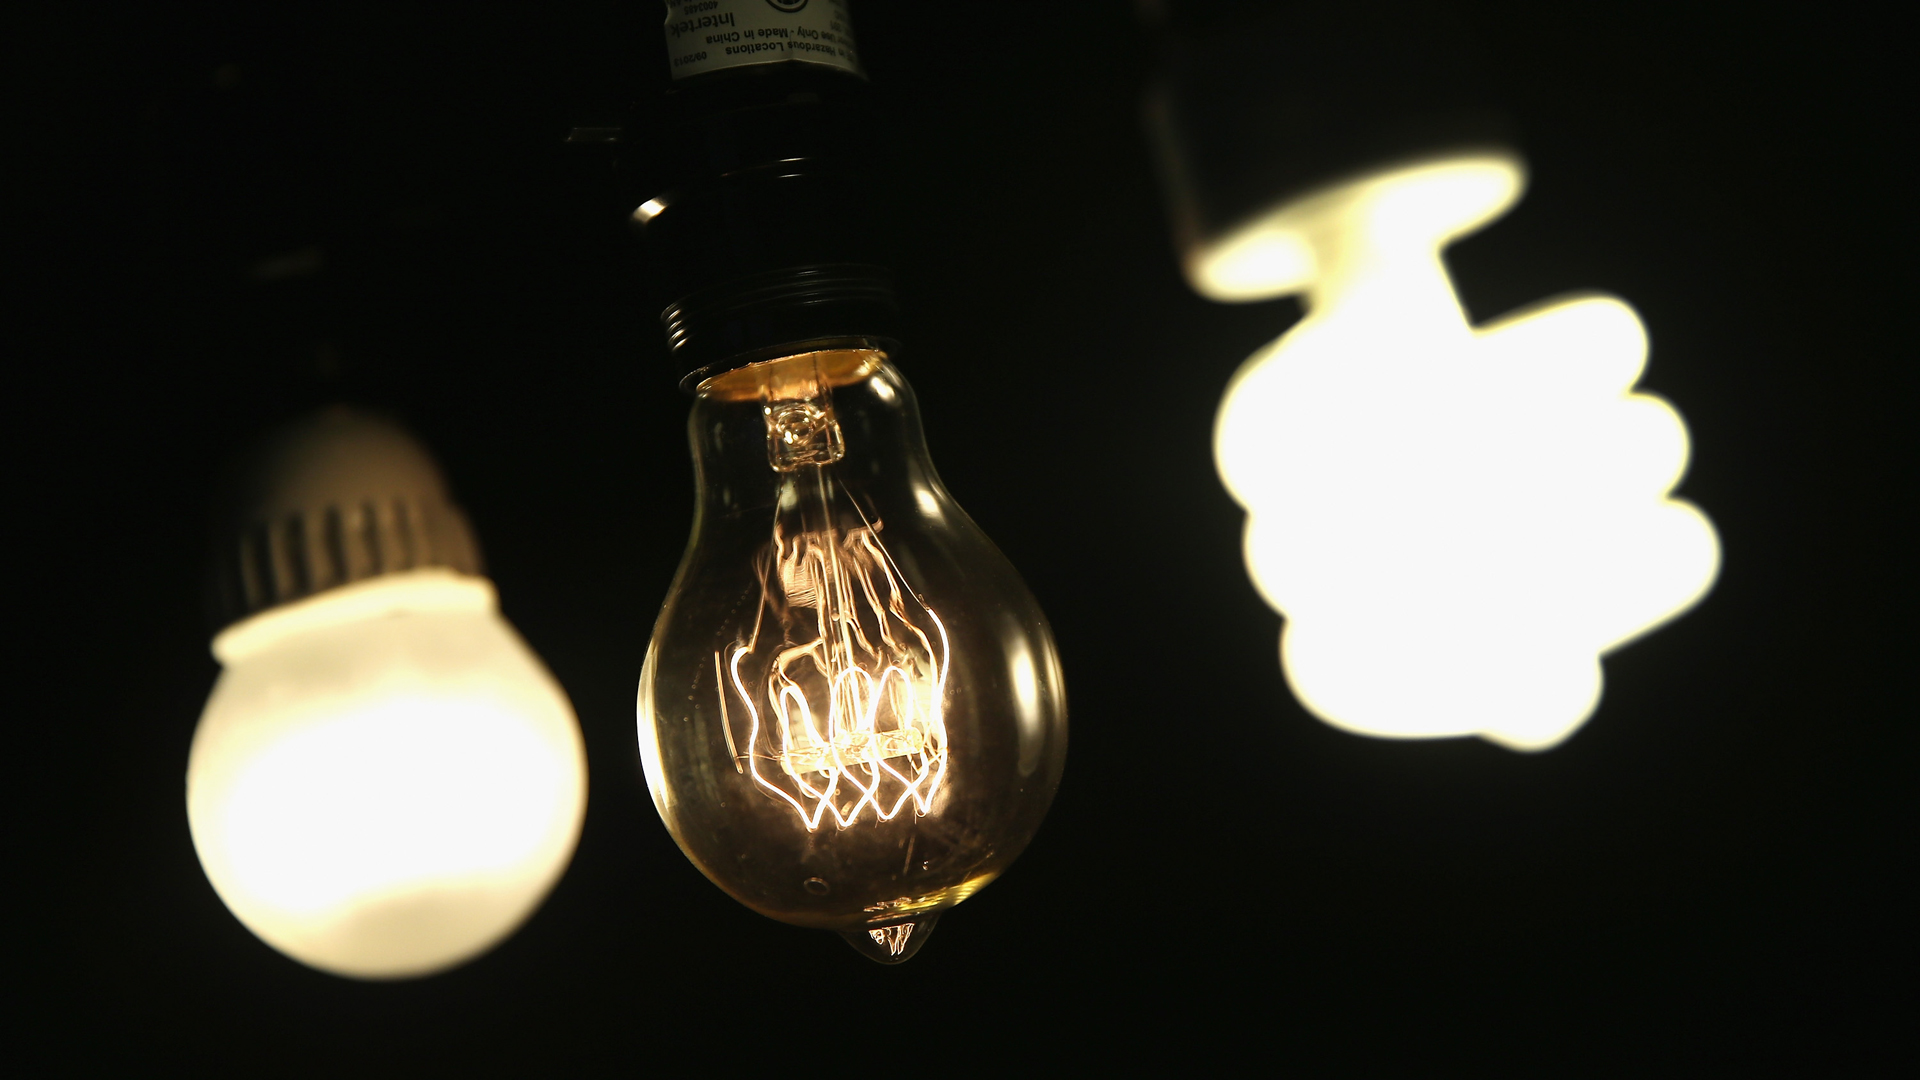 A vintage-style incandescent light bulb, center, is shown with an LED light bulb, left, and a compact florescent bulb in Chicago, Illinois, on Dec. 27, 2013. (Credit: Scott Olson / Getty Images)